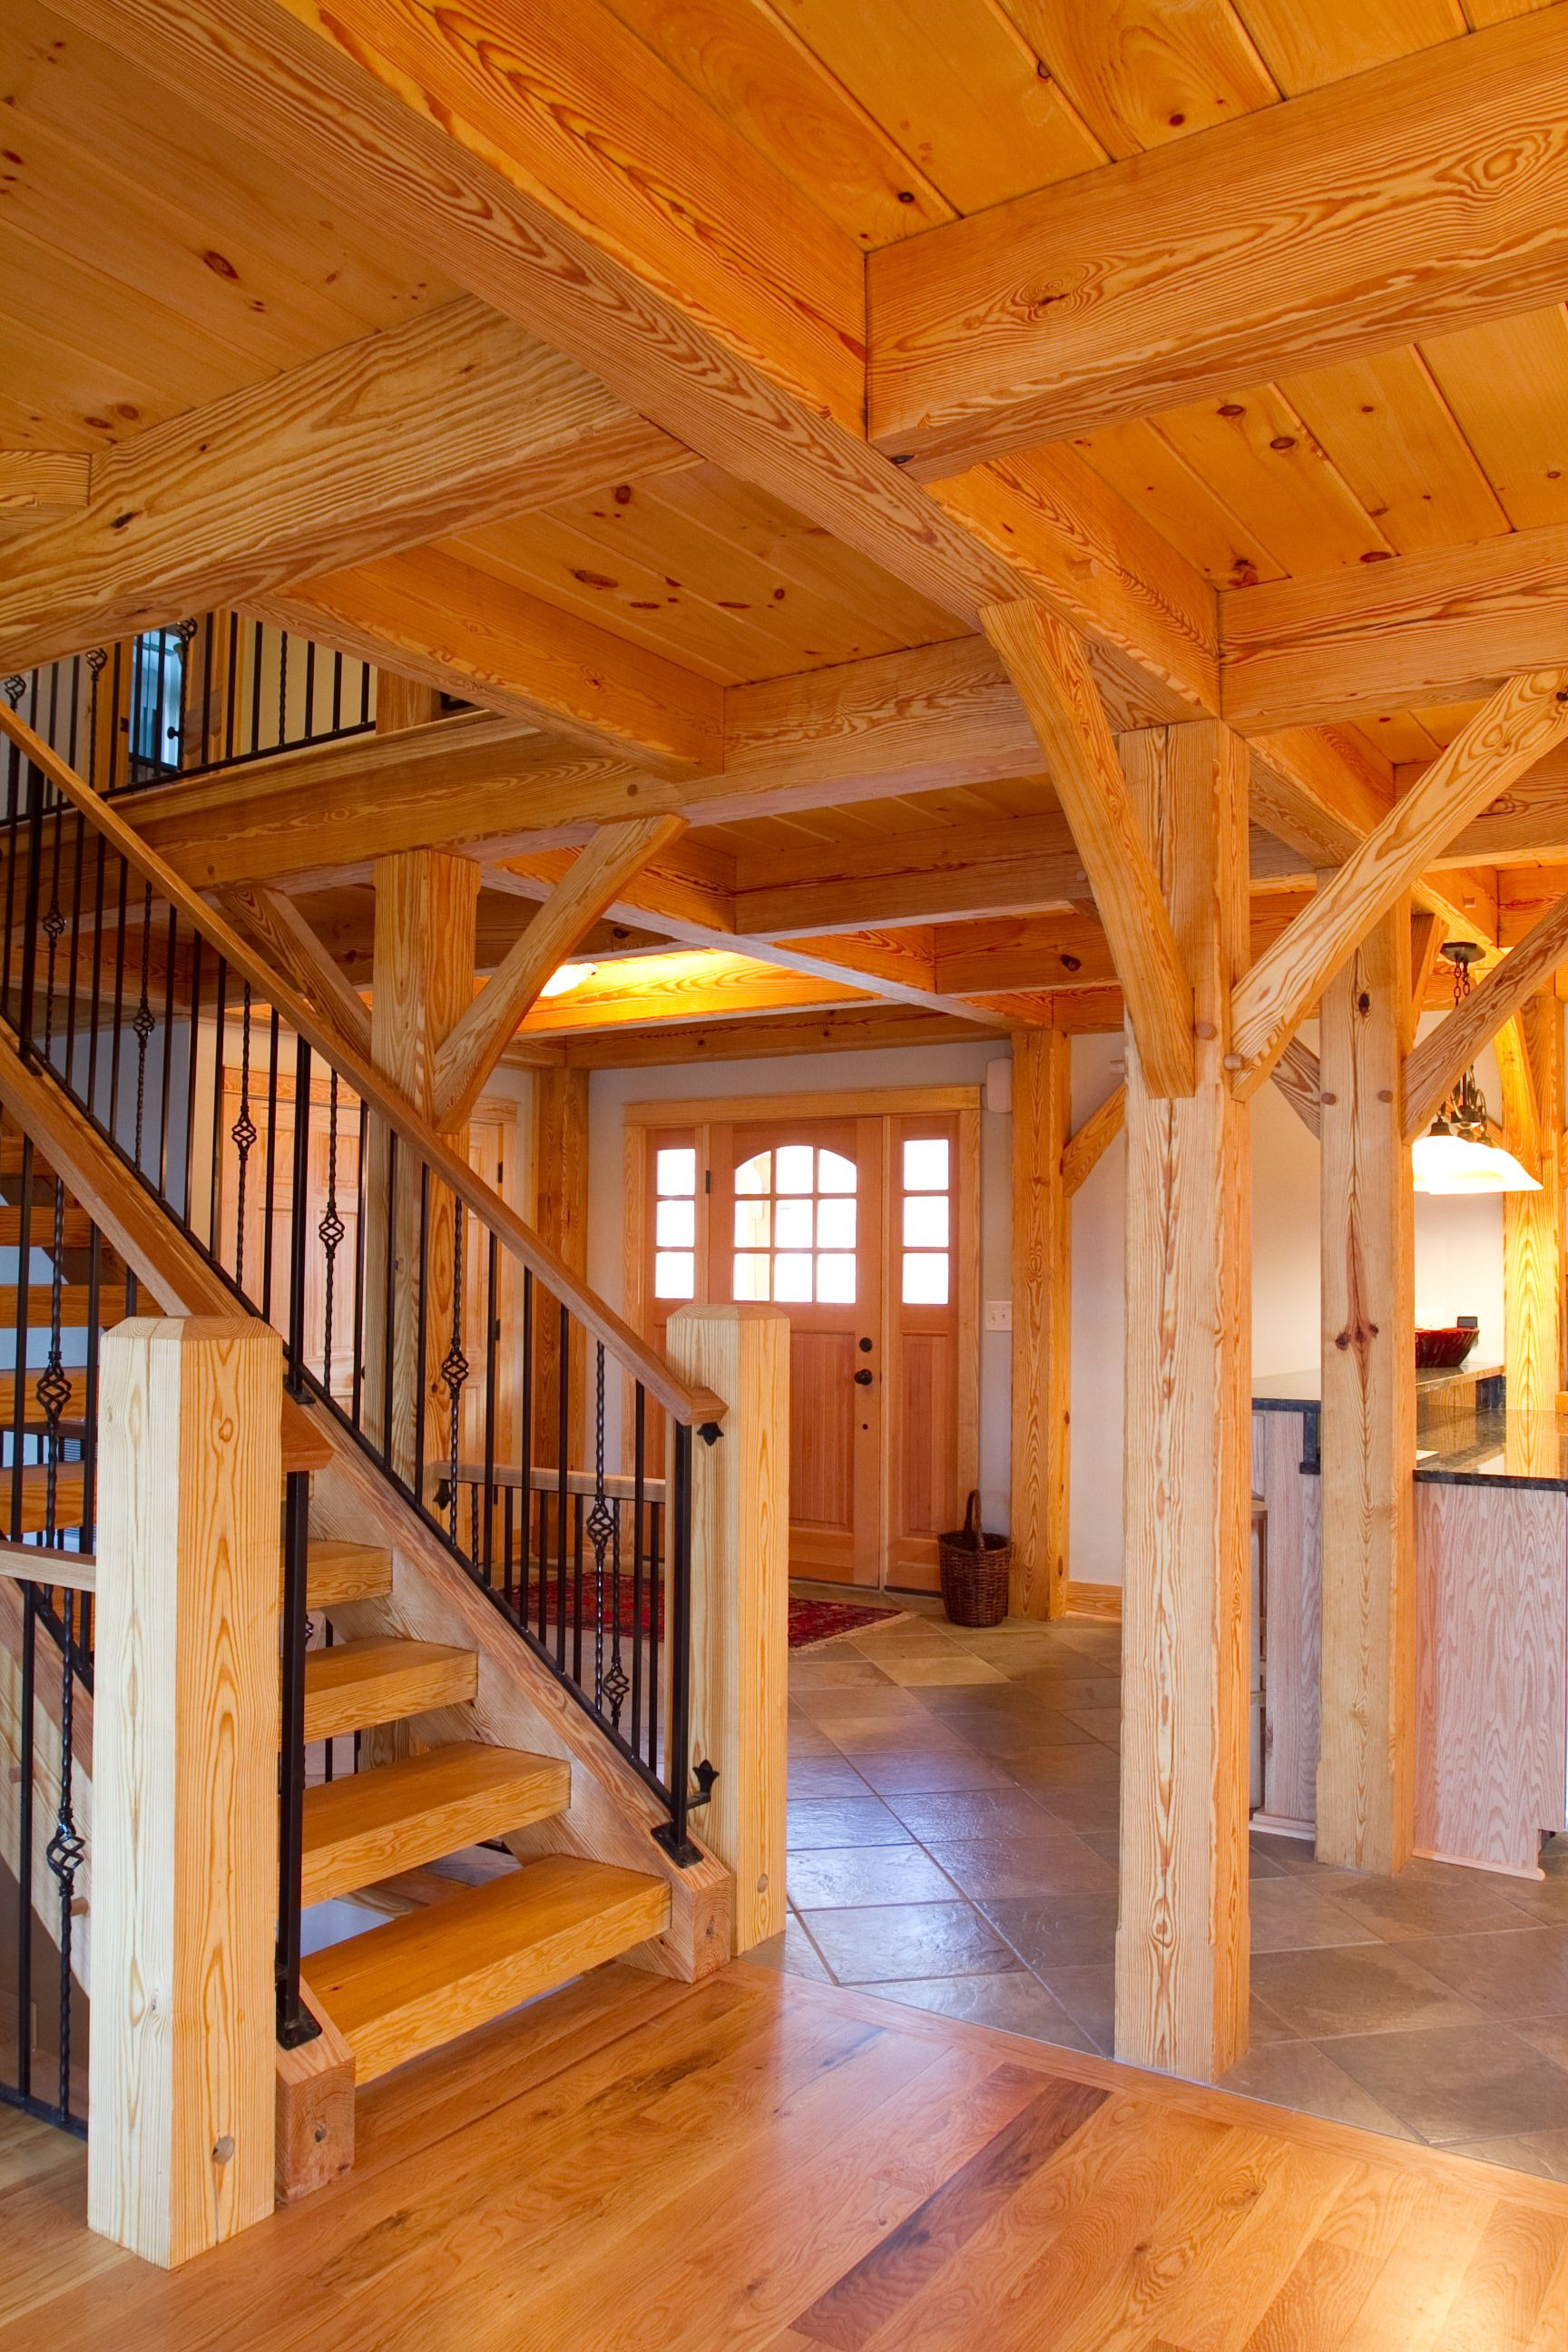 Timber Frame House Plans for Sale Fresh Beautiful Woodhouse Timber Frame Interior Built by Summit